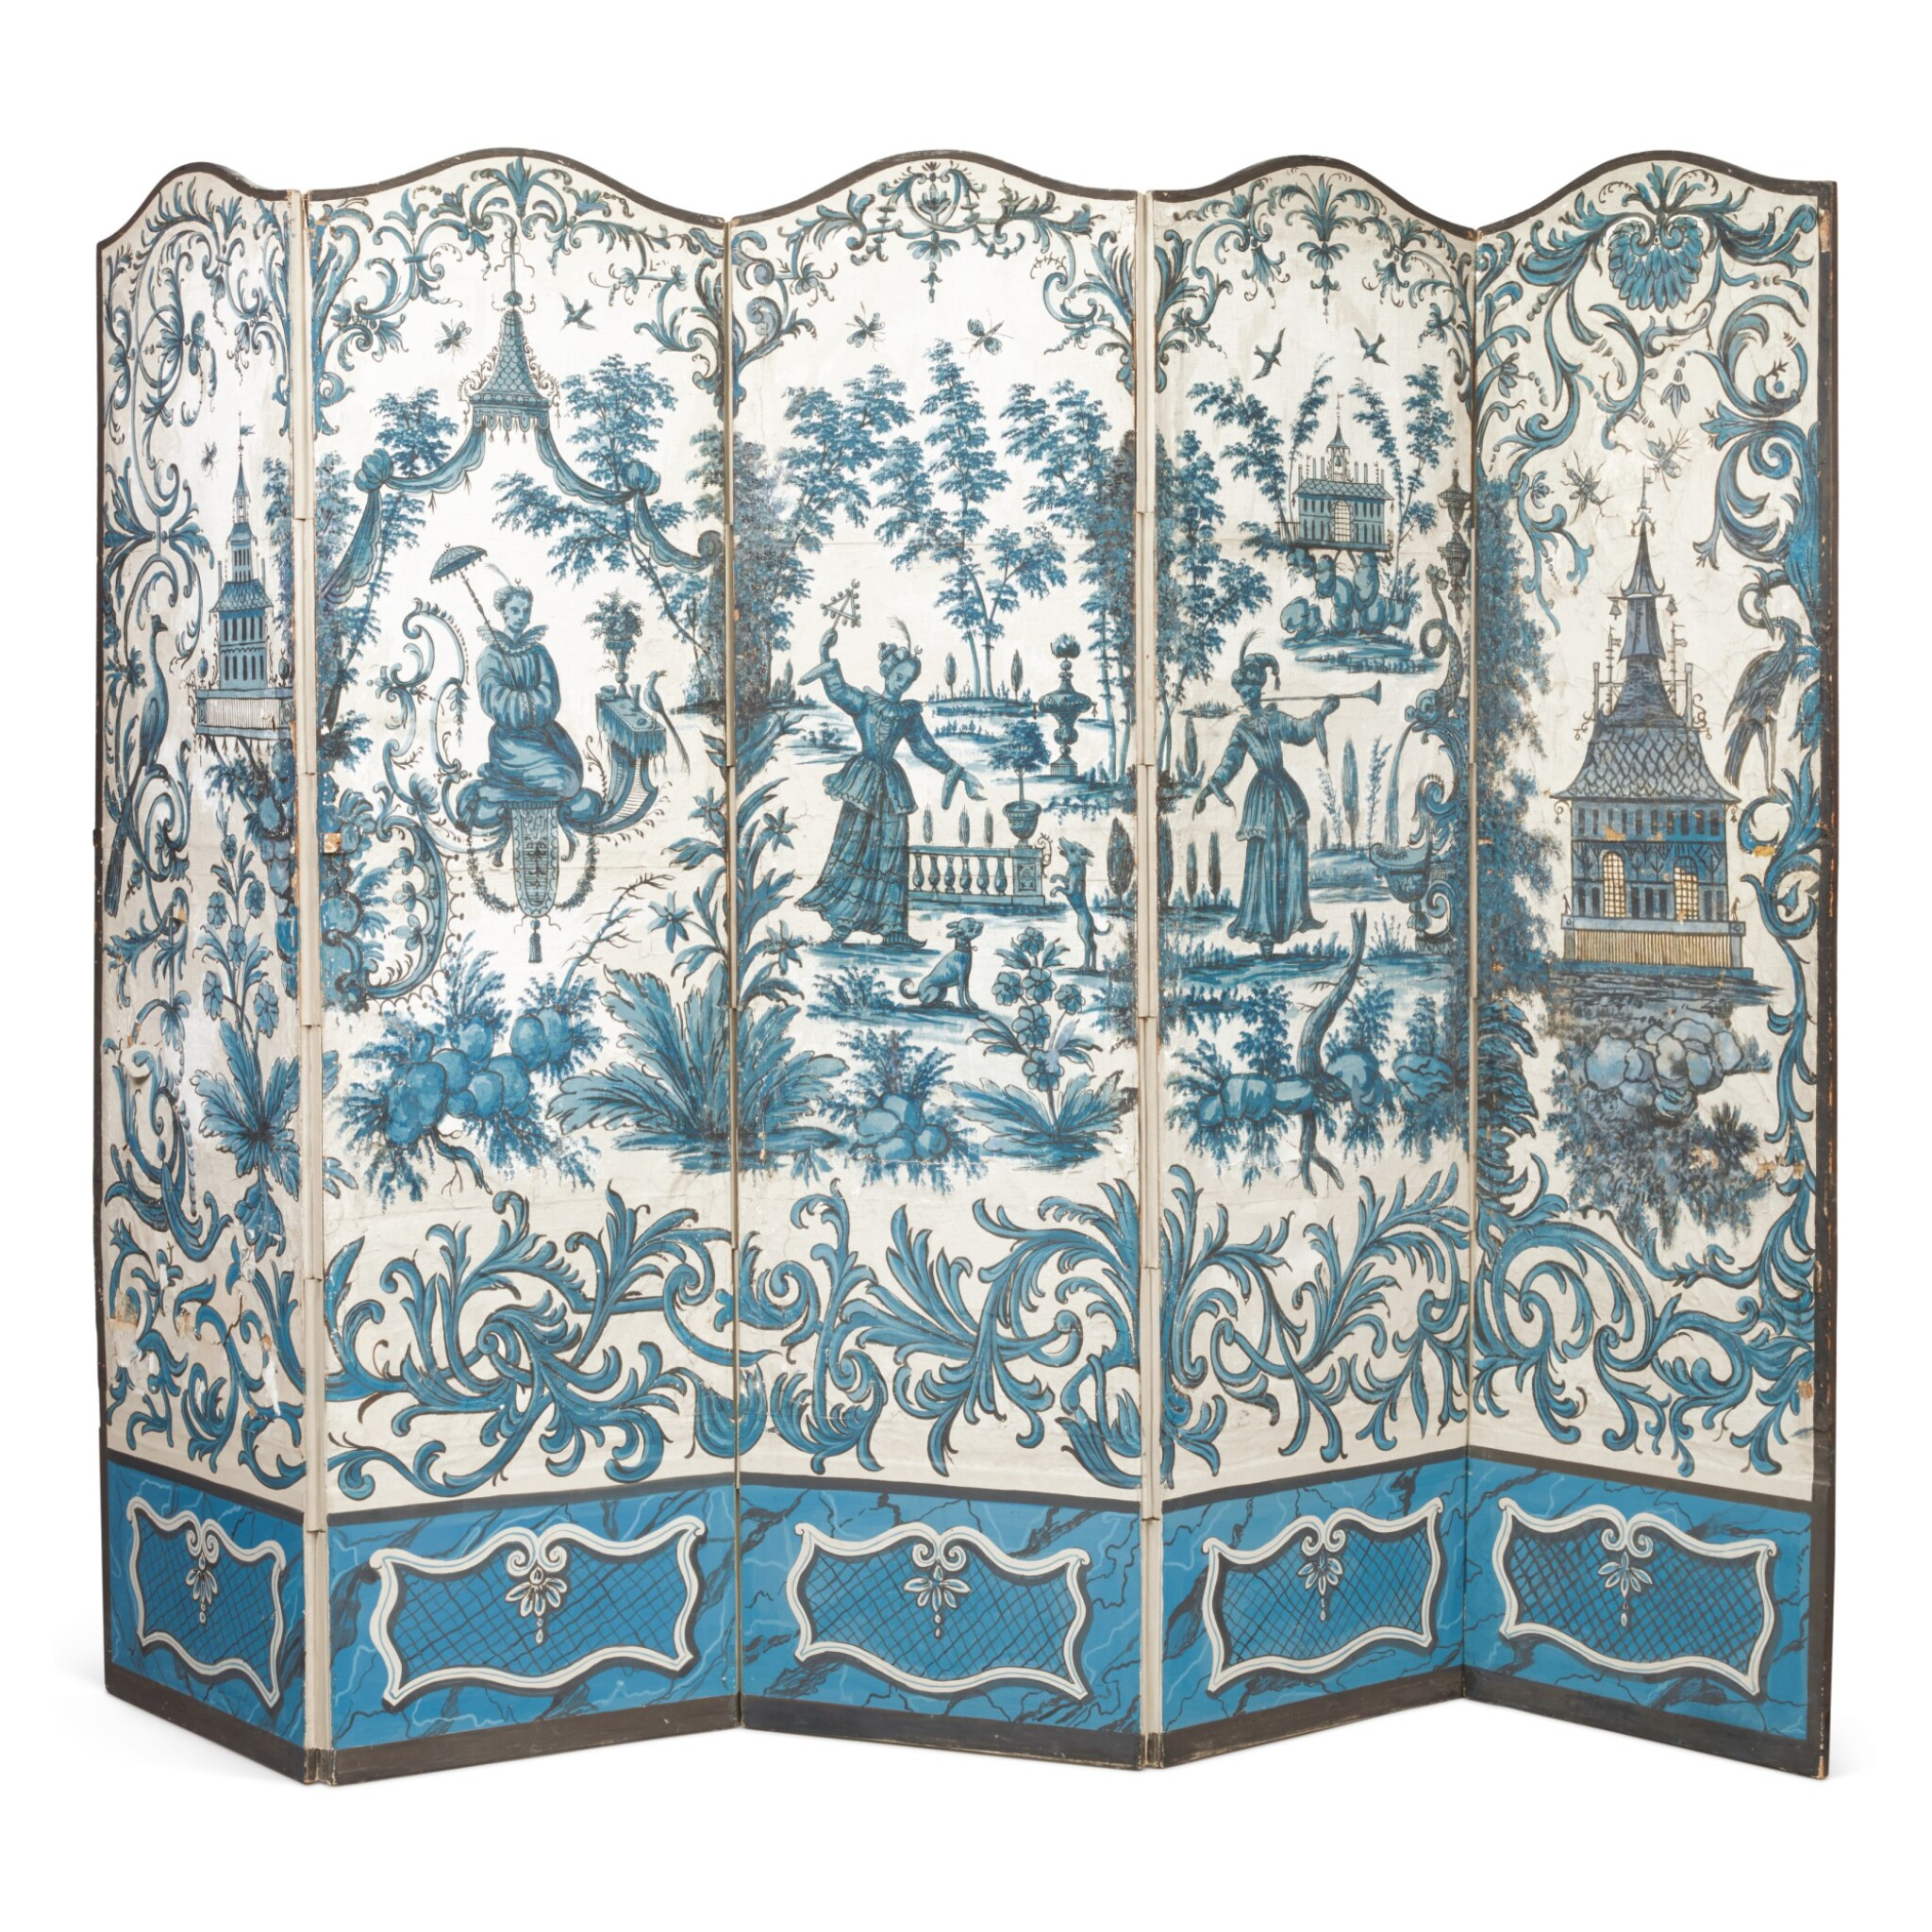 View full screen - View 1 of Lot 42. A LOUIS XV FIVE-FOLD BLUE AND WHITE CHINOISERIE WALLPAPER SCREEN, THE WALLPAPER 18TH CENTURY.